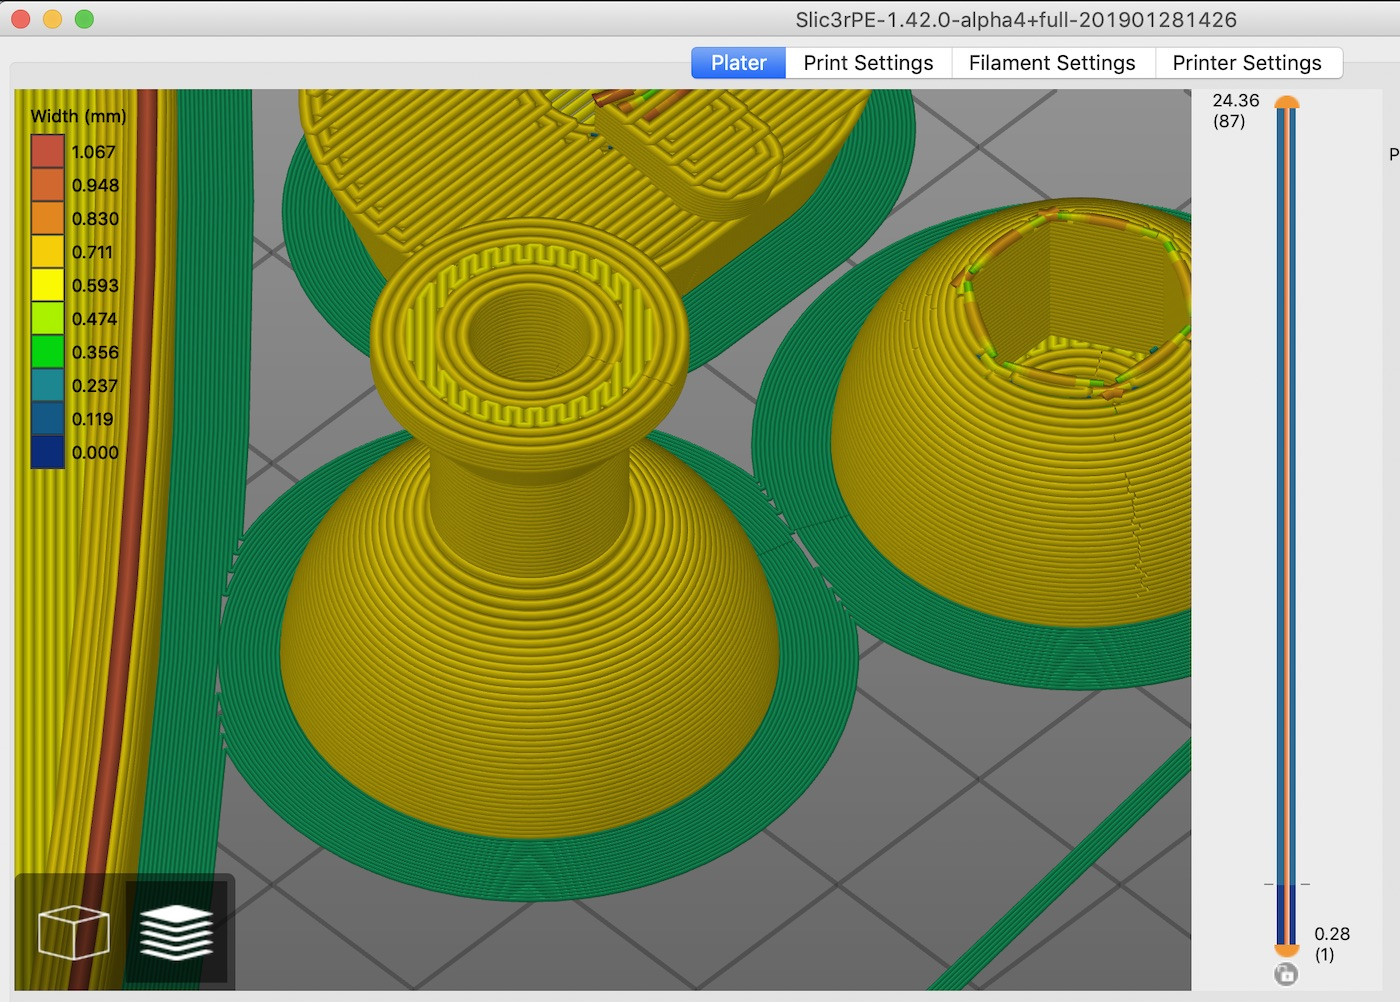 Super narrow Brim and Skirt paths · Issue #1752 · prusa3d